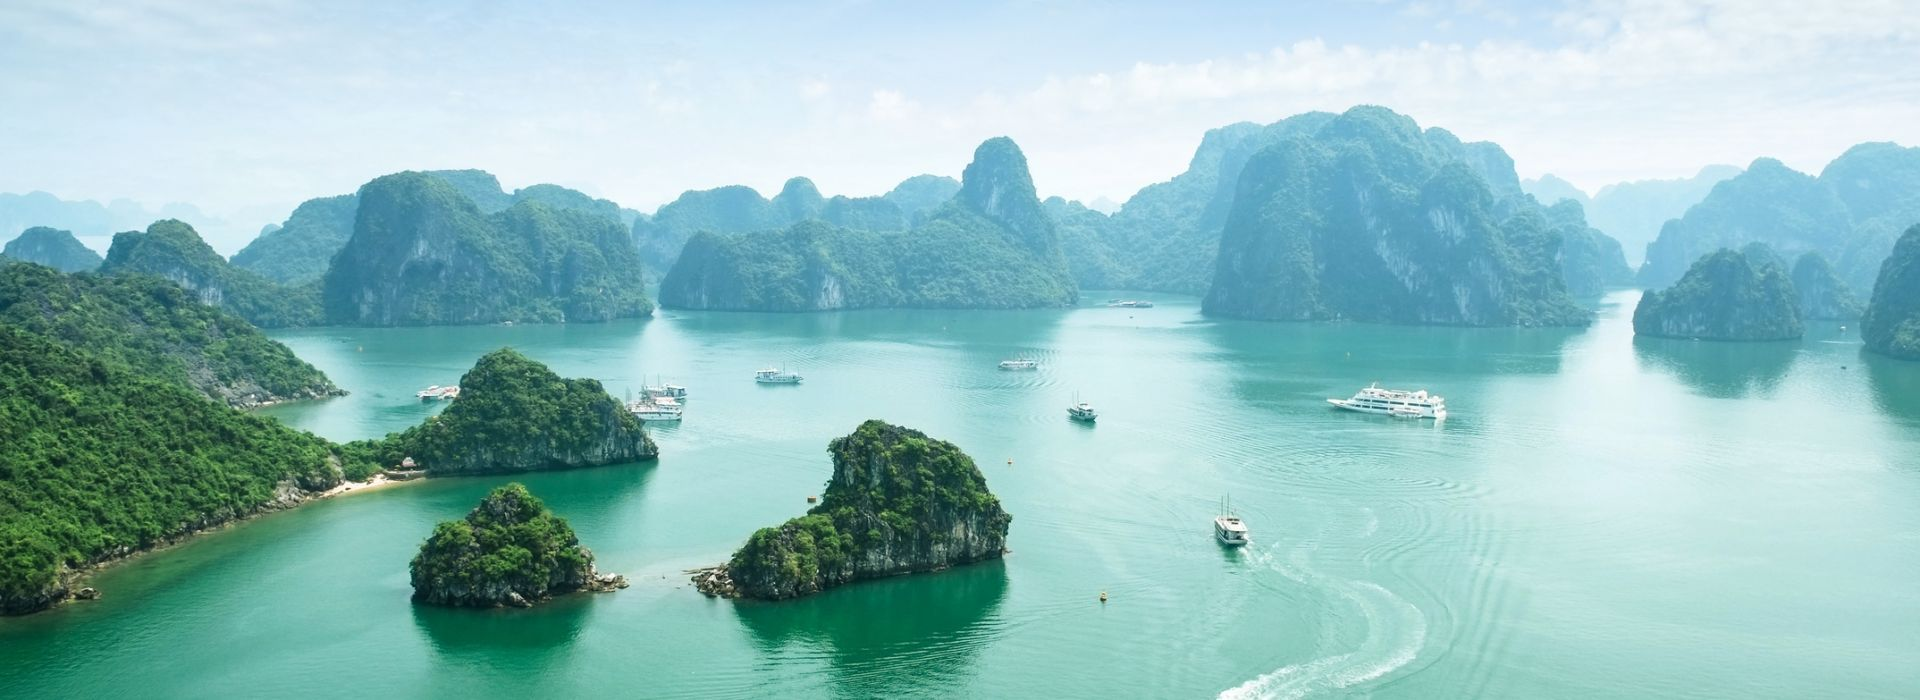 Beach, romance, getaways and relaxation Tours in Ha Long Bay